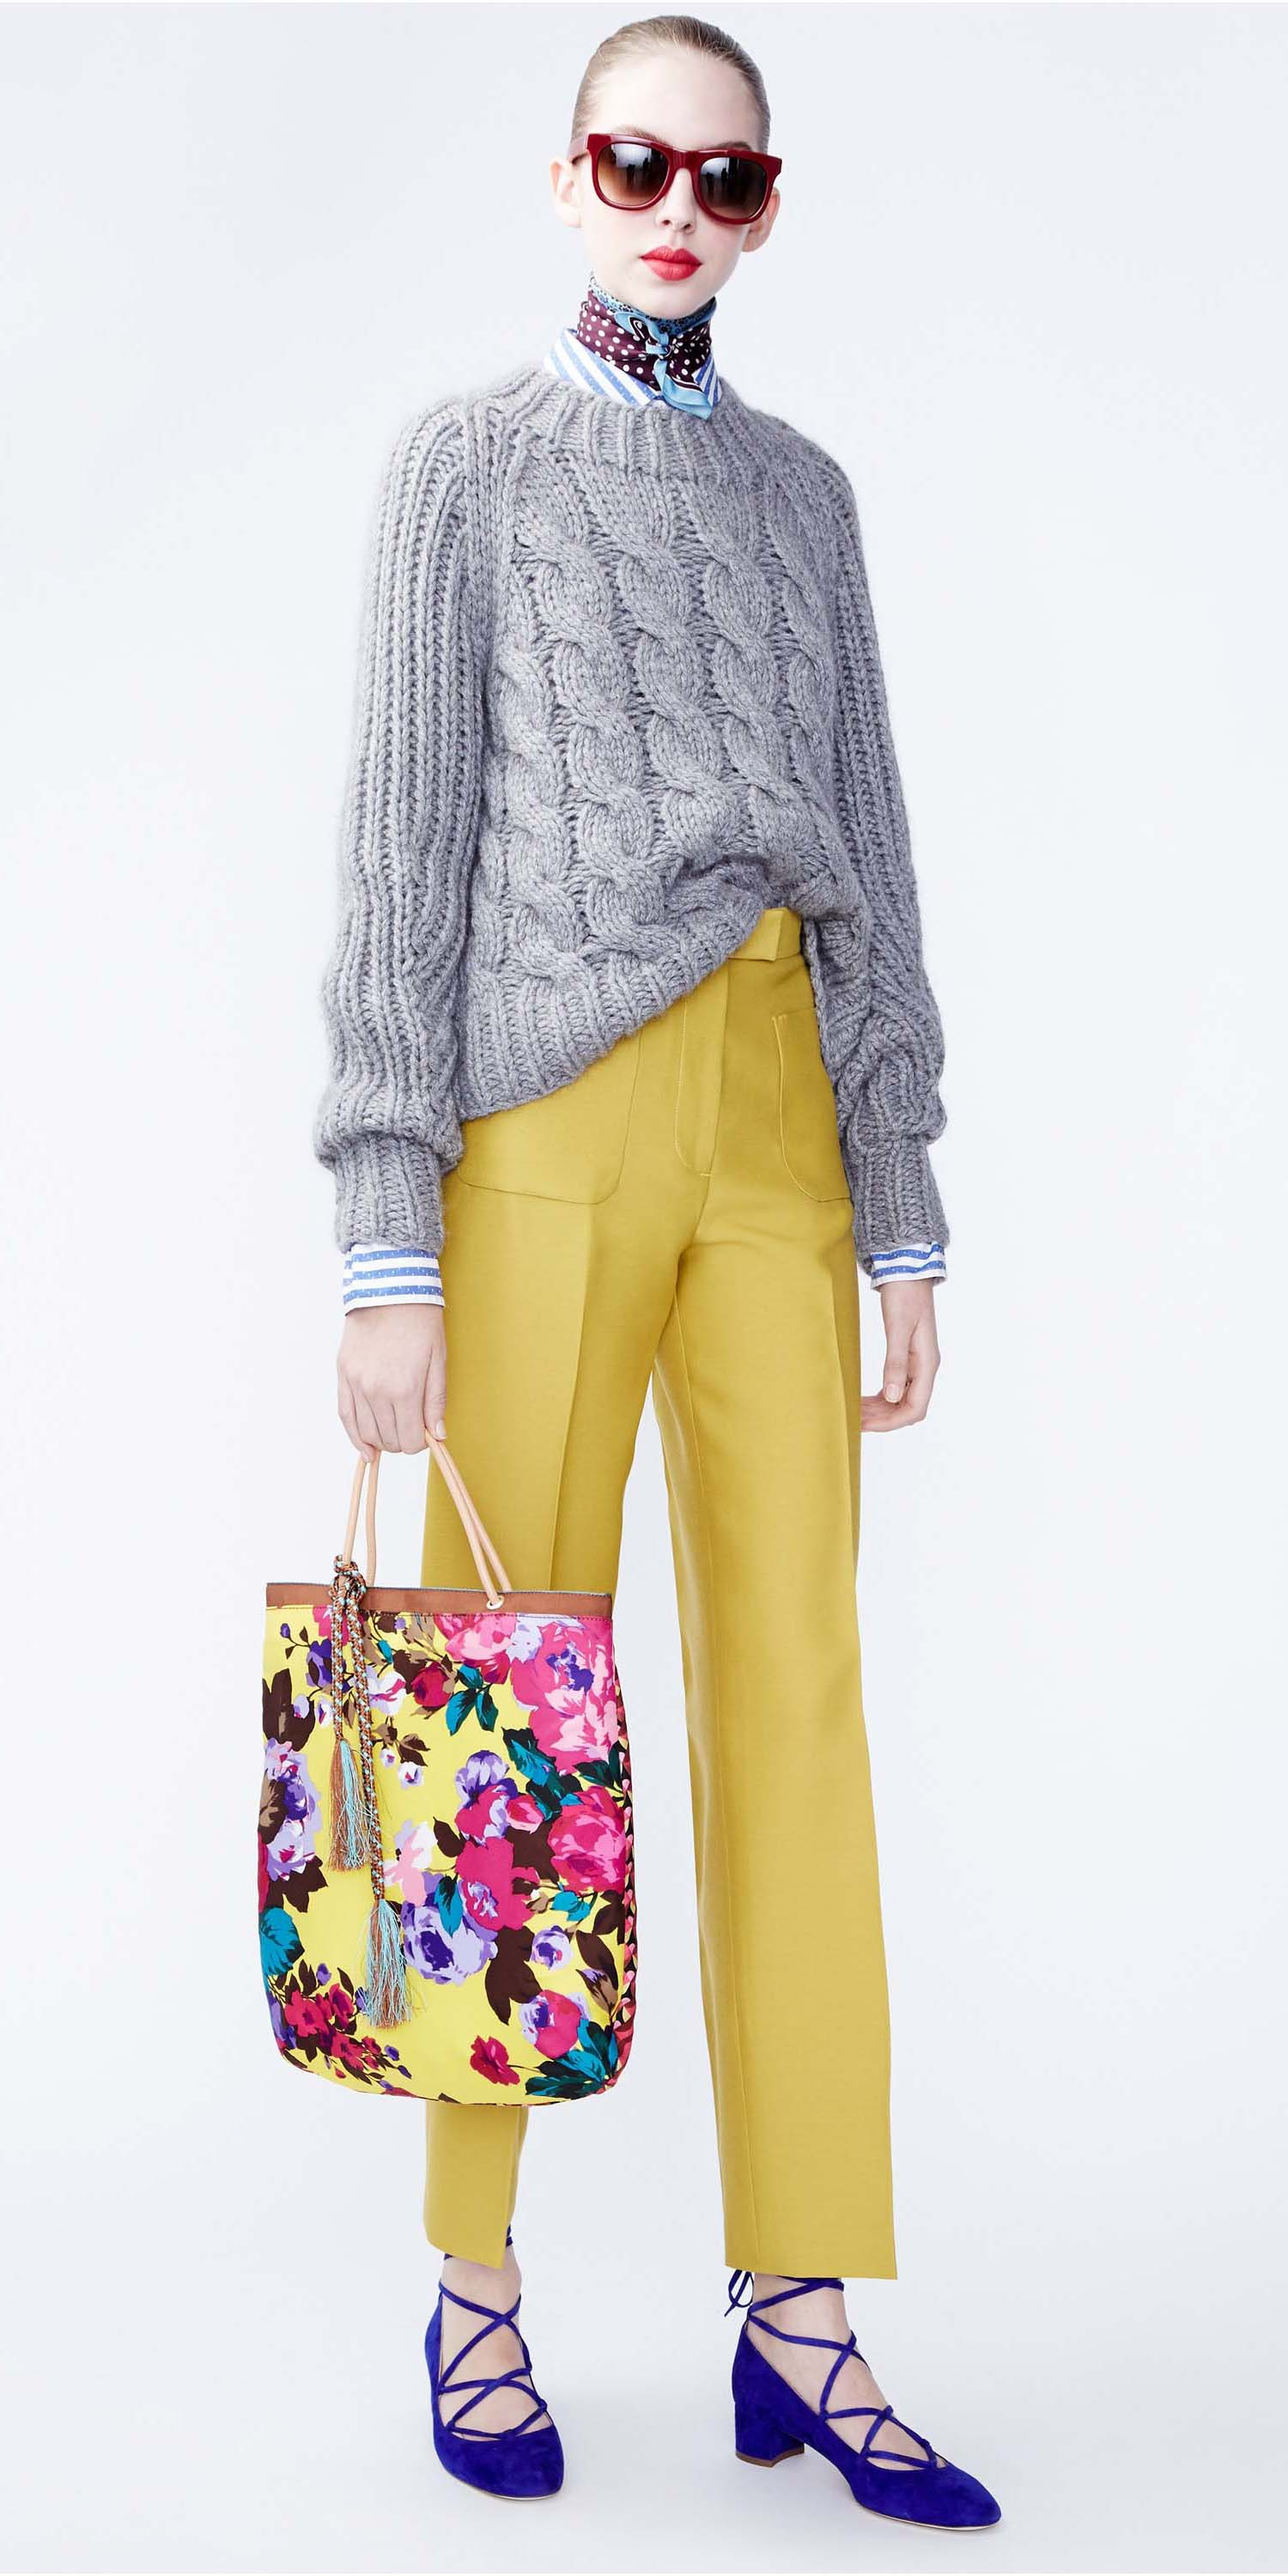 yellow-slim-pants-blue-med-collared-shirt-stripe-grayl-sweater-sun-yellow-bag-howtowear-cableknit-burgundy-scarf-neck-blue-shoe-flats-jcrew-outfit-fall-winter-hairr-lunch.jpg